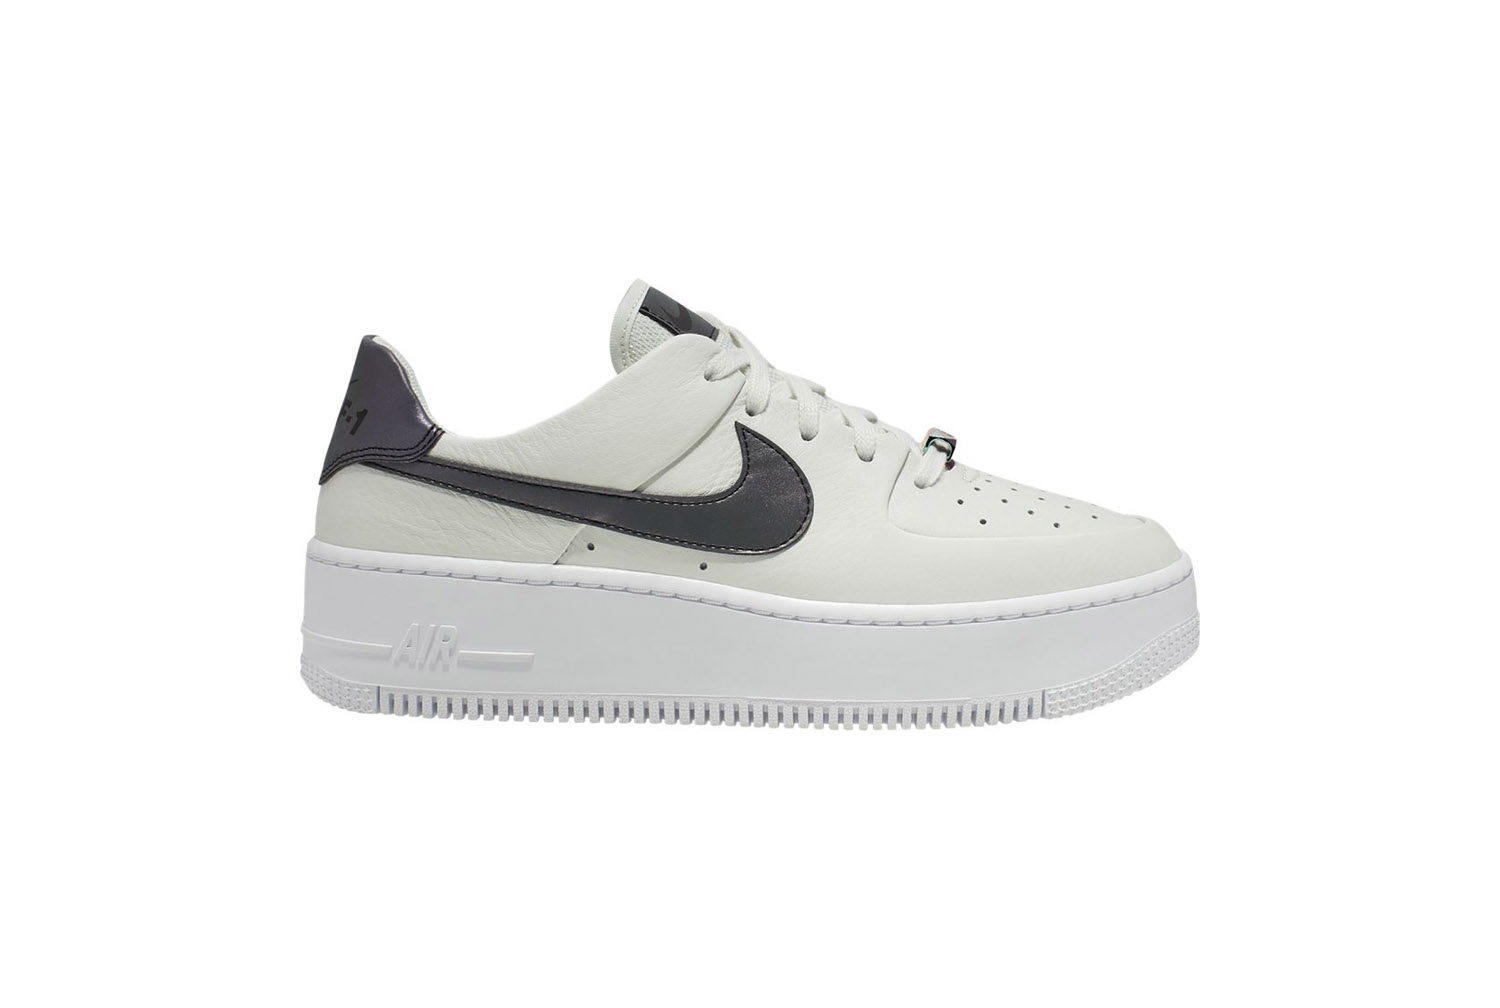 Force 1 LX Sage Air Low Nike Donna rQhtsd